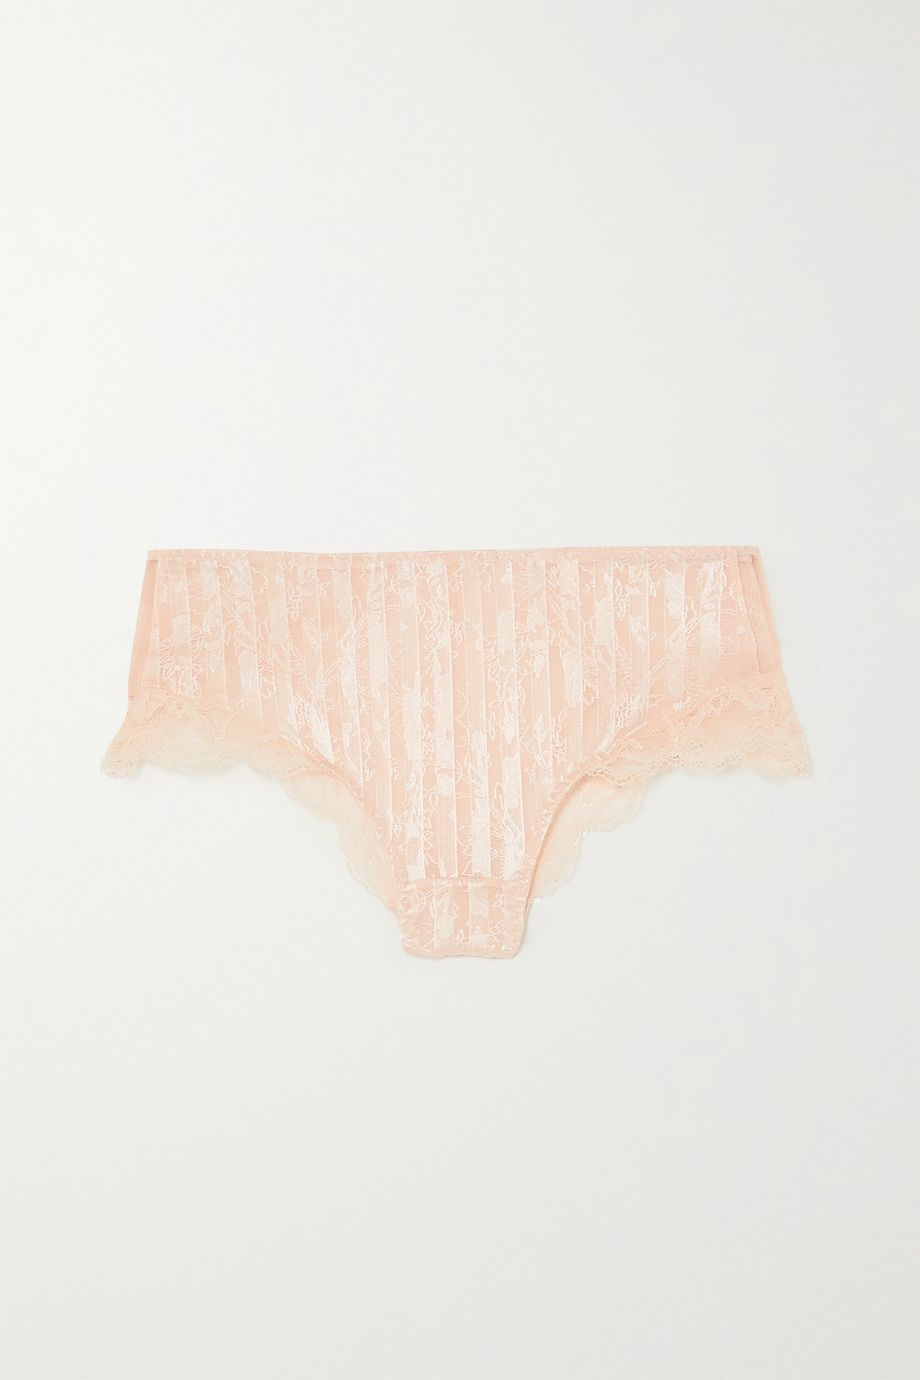 Maison Lejaby Embroidered stretch-tulle briefs